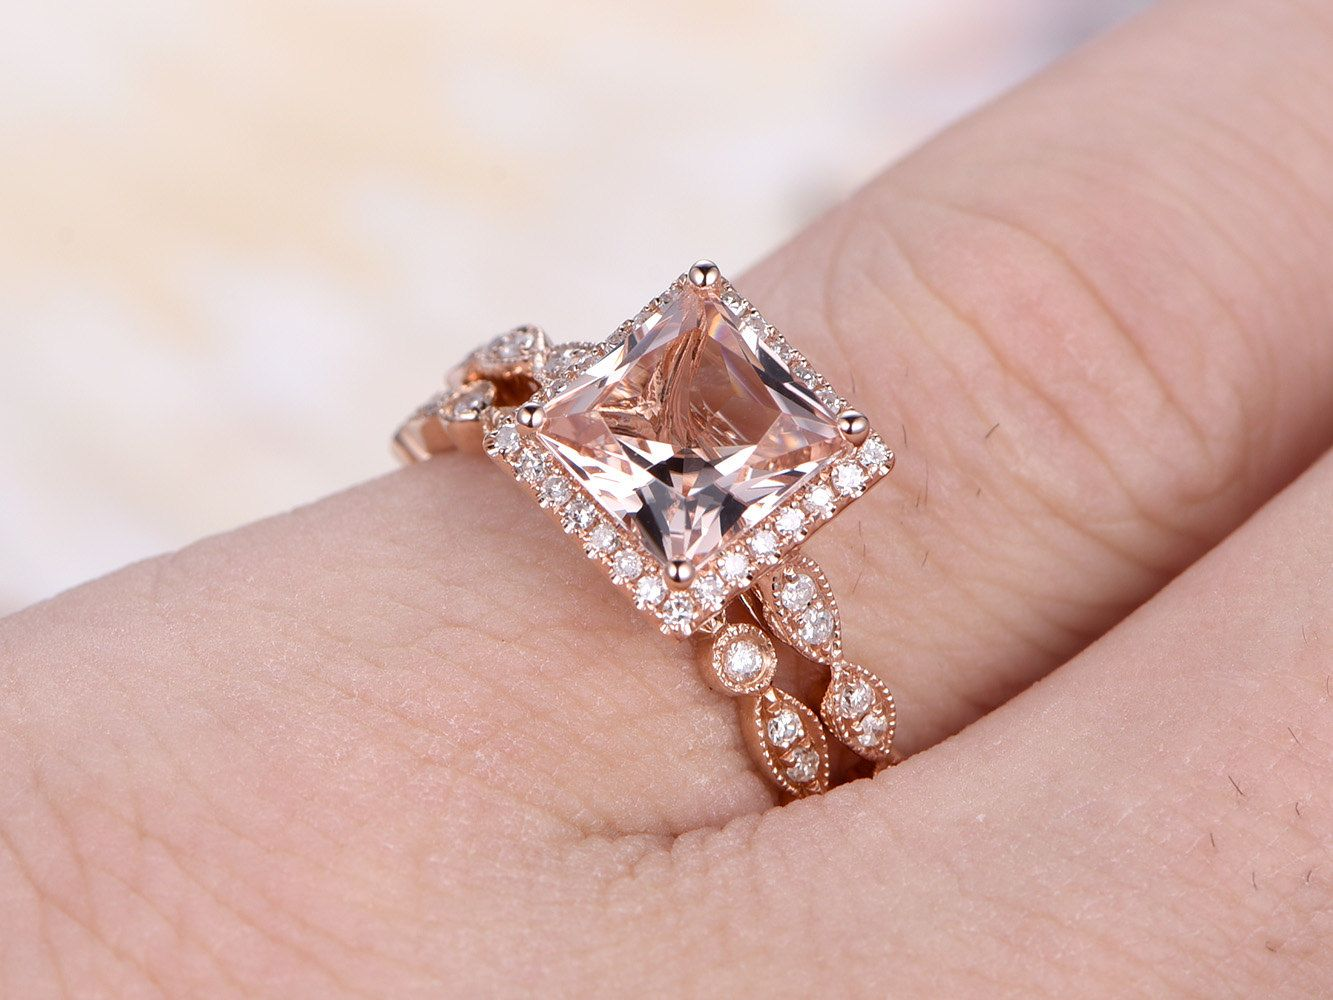 2pcs Wedding Ring Set,Natural Pink Morganite Ring,6.5mm Princess Cut ...